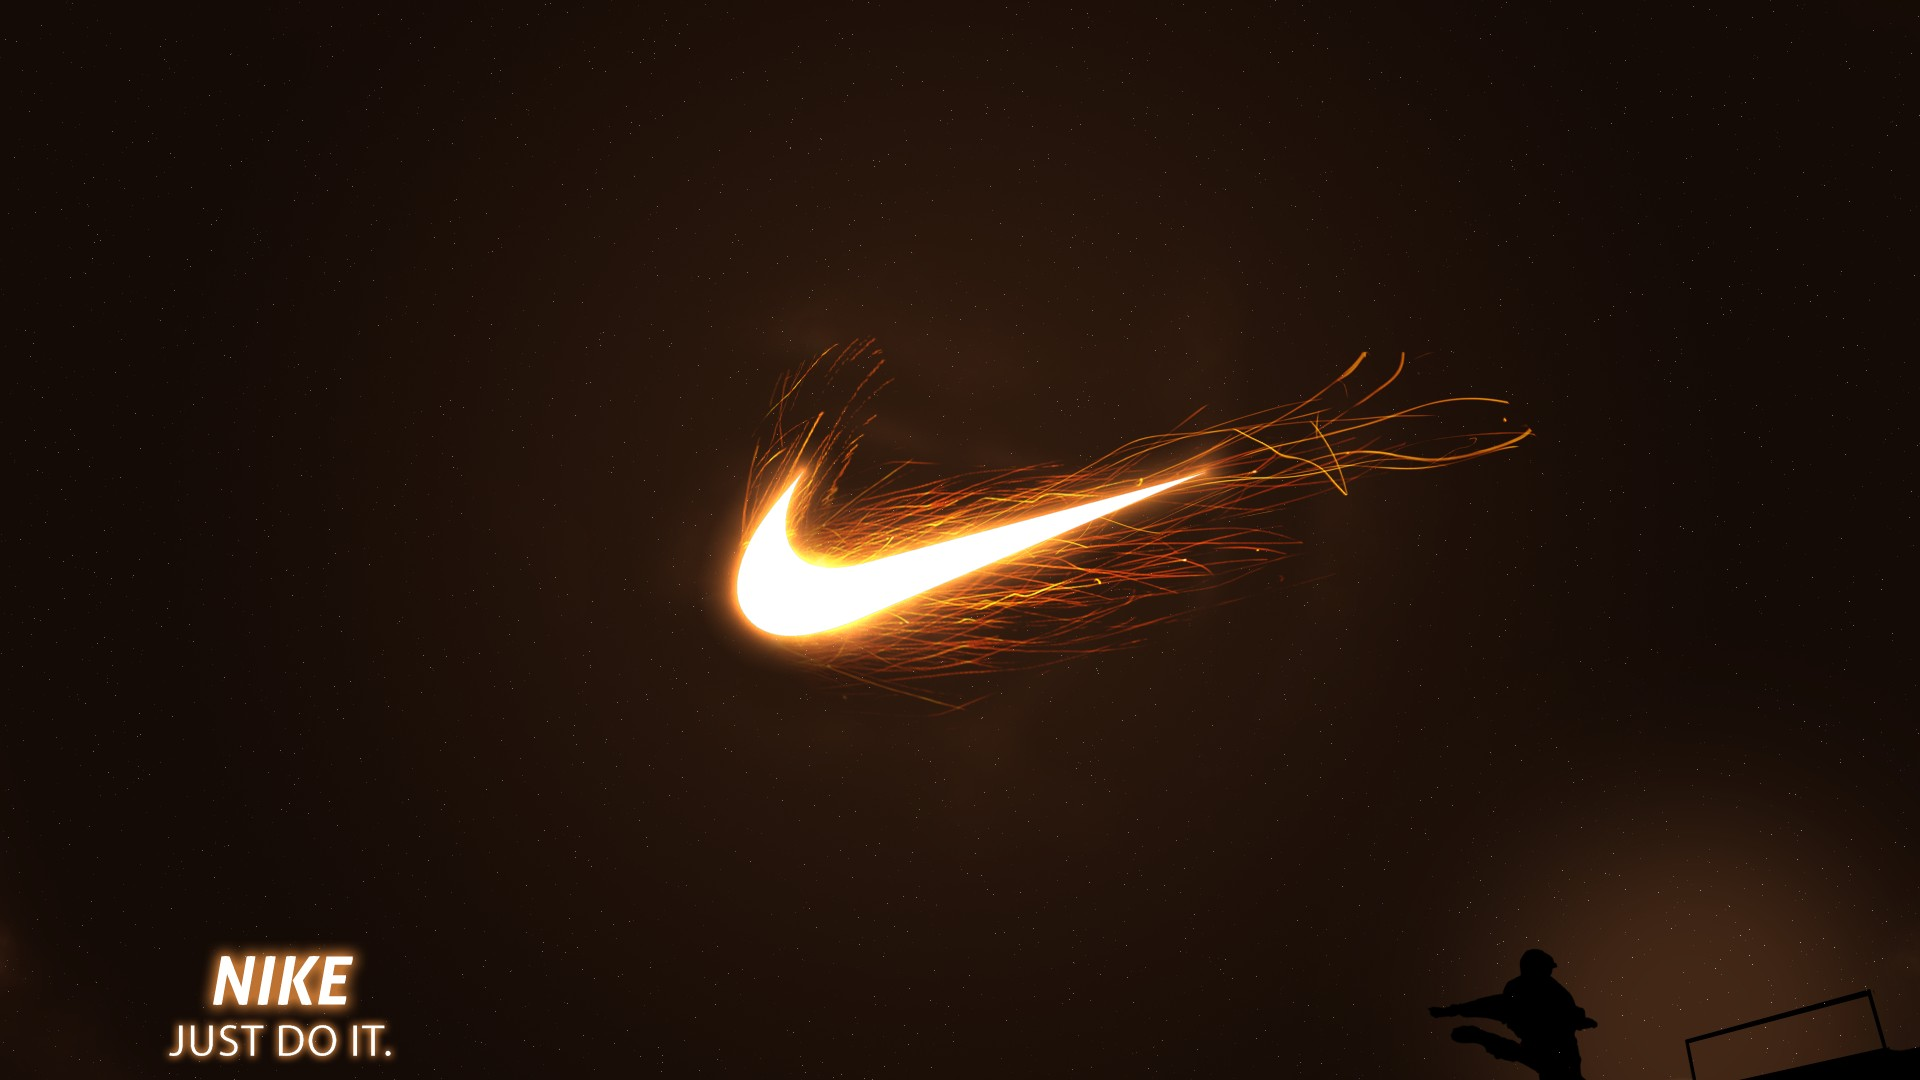 Cool nike wallpapers hd free downlaod wallpaper cool nike wallpapers hd free downlaod voltagebd Gallery